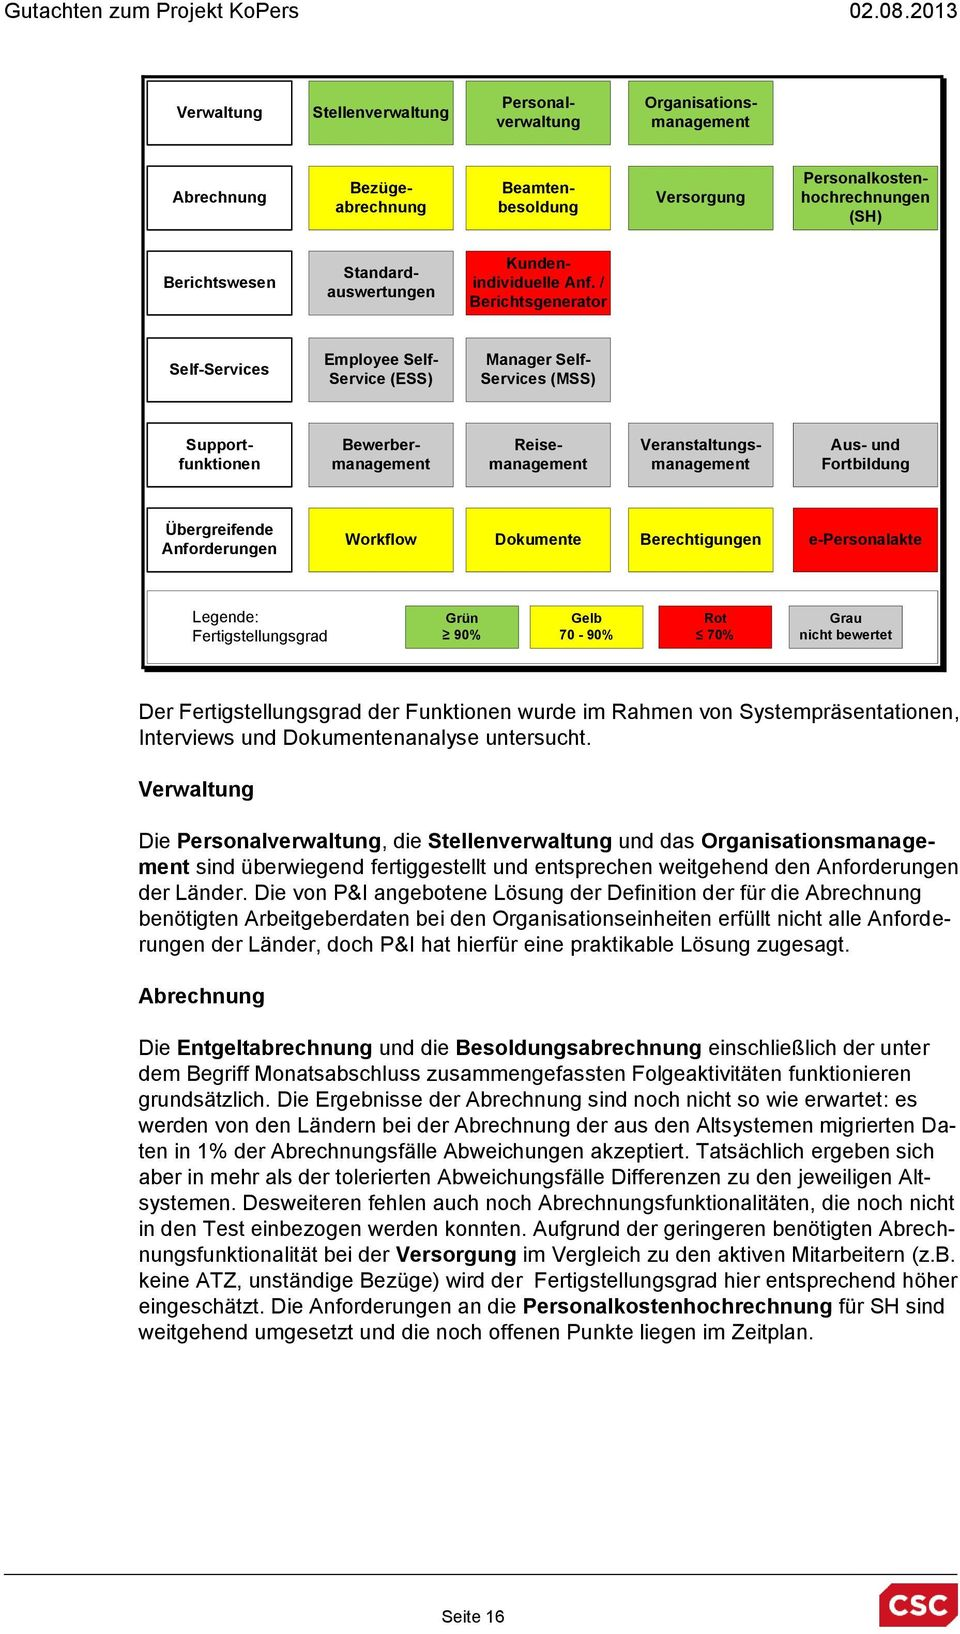 / Berichtsgenerator Self-Services Employee Self- Service (ESS) Manager Self- Services (MSS) Supportfunktionen Bewerbermanagement Reisemanagement Veranstaltungsmanagement Aus- und Fortbildung